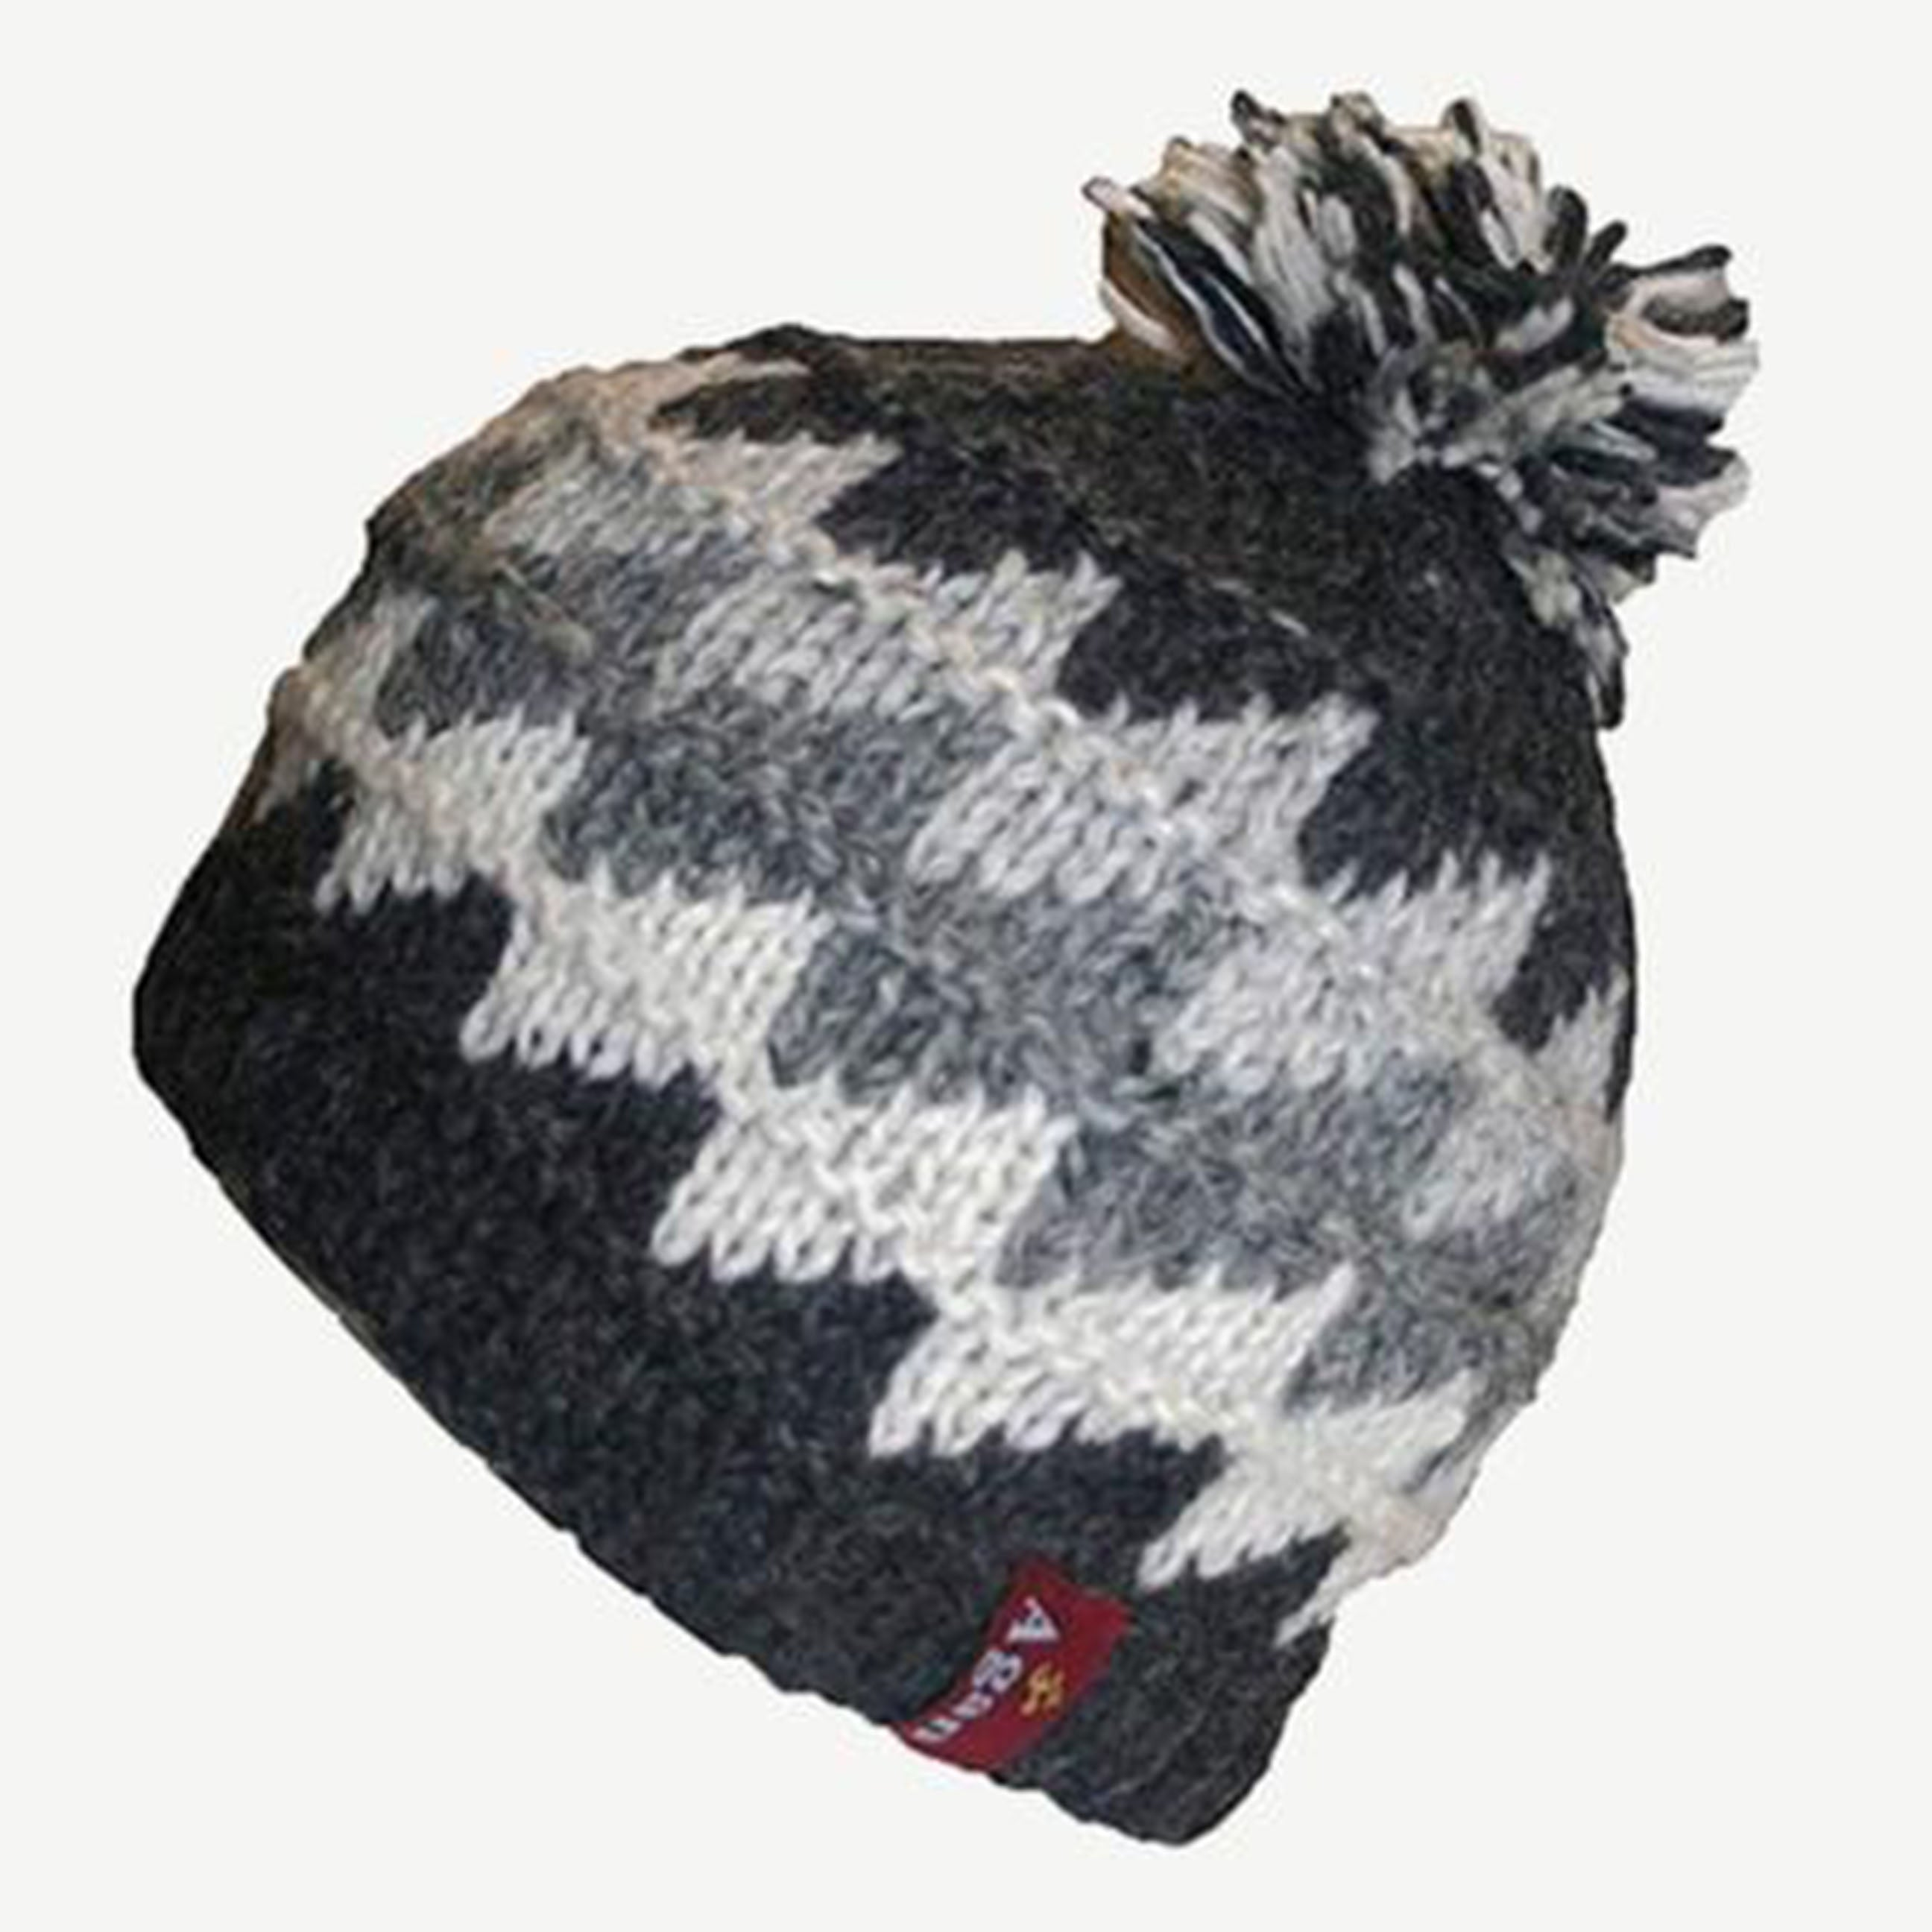 Two Tone Knit Crochet Chaal Hat Small & Medium - Agan Traders, Charcoal